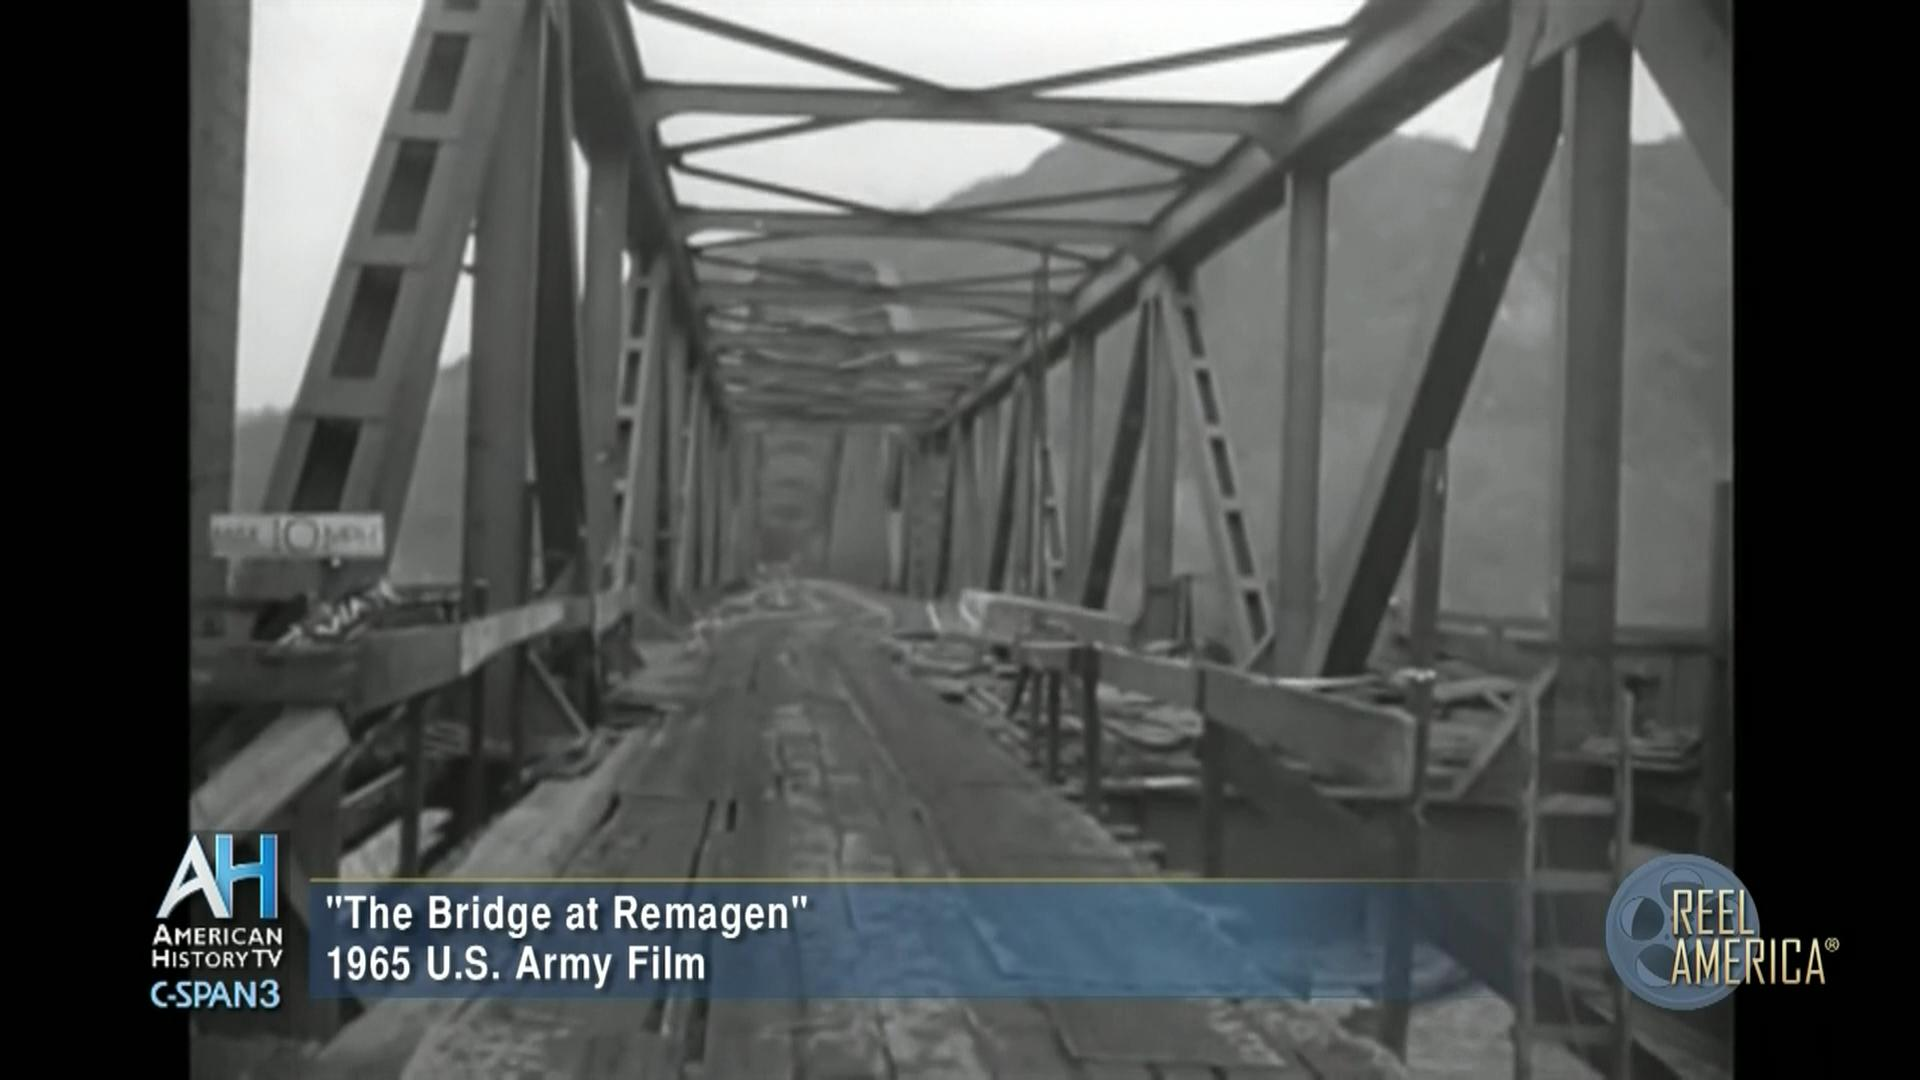 Reel America Bridge Remagen 1945, Jan 31 1965 | Video | C-SPAN.org